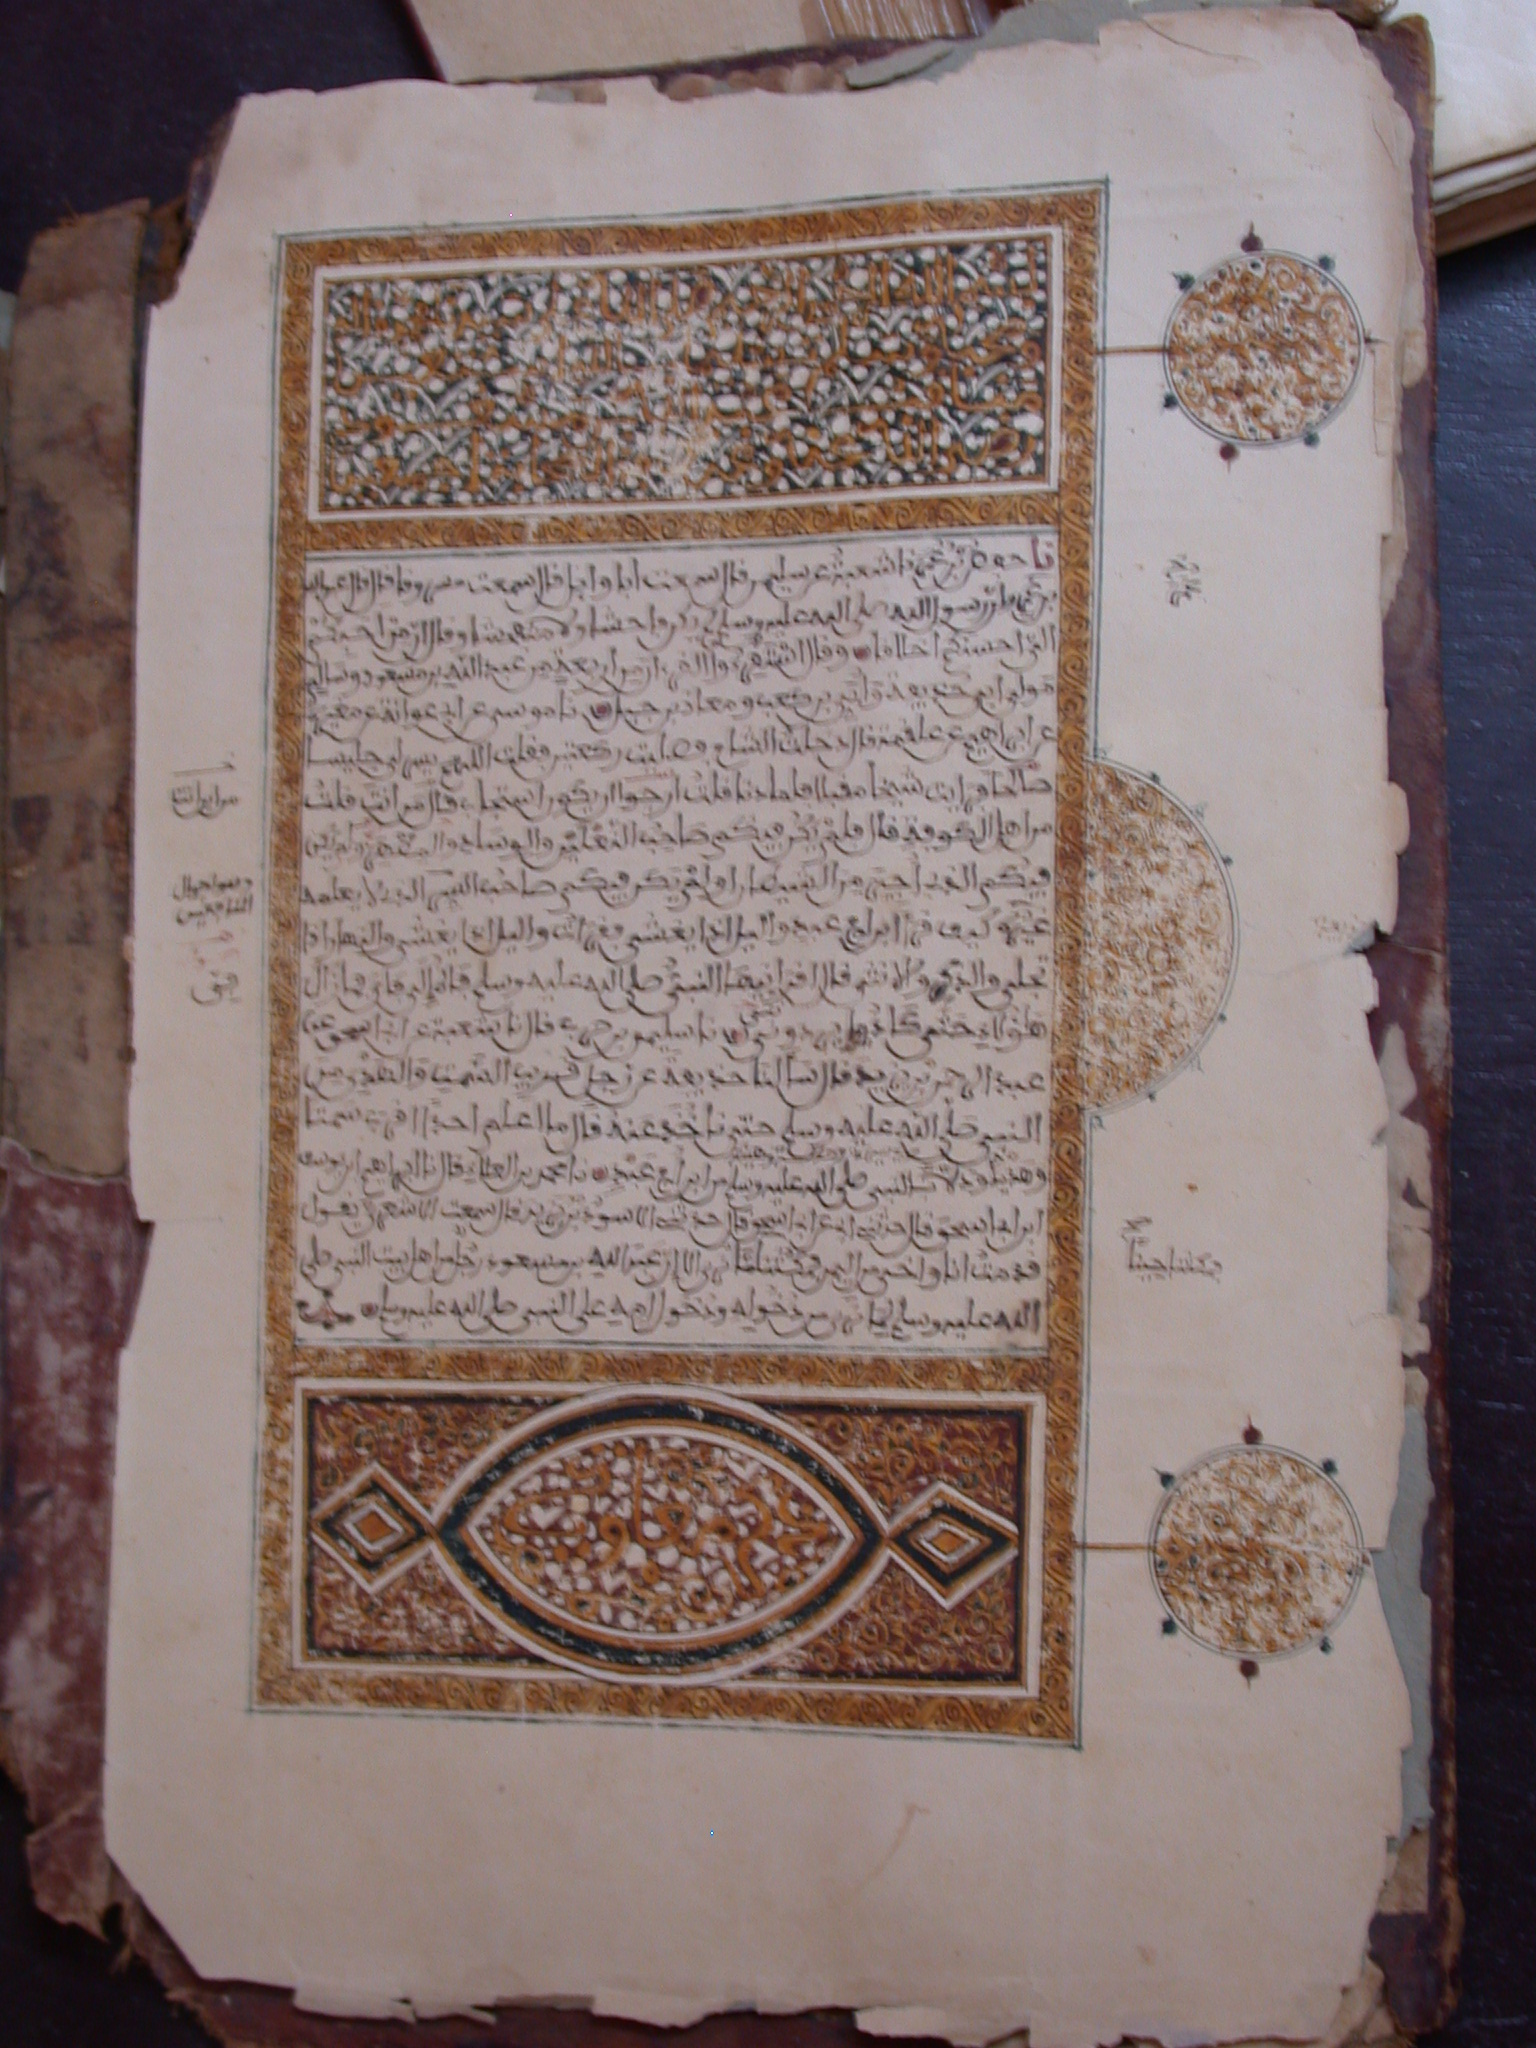 Albakhari, Volume III, Illuminated Manuscript, Copied in 1277 H, Manuscript Library, Timbuktu, Mali